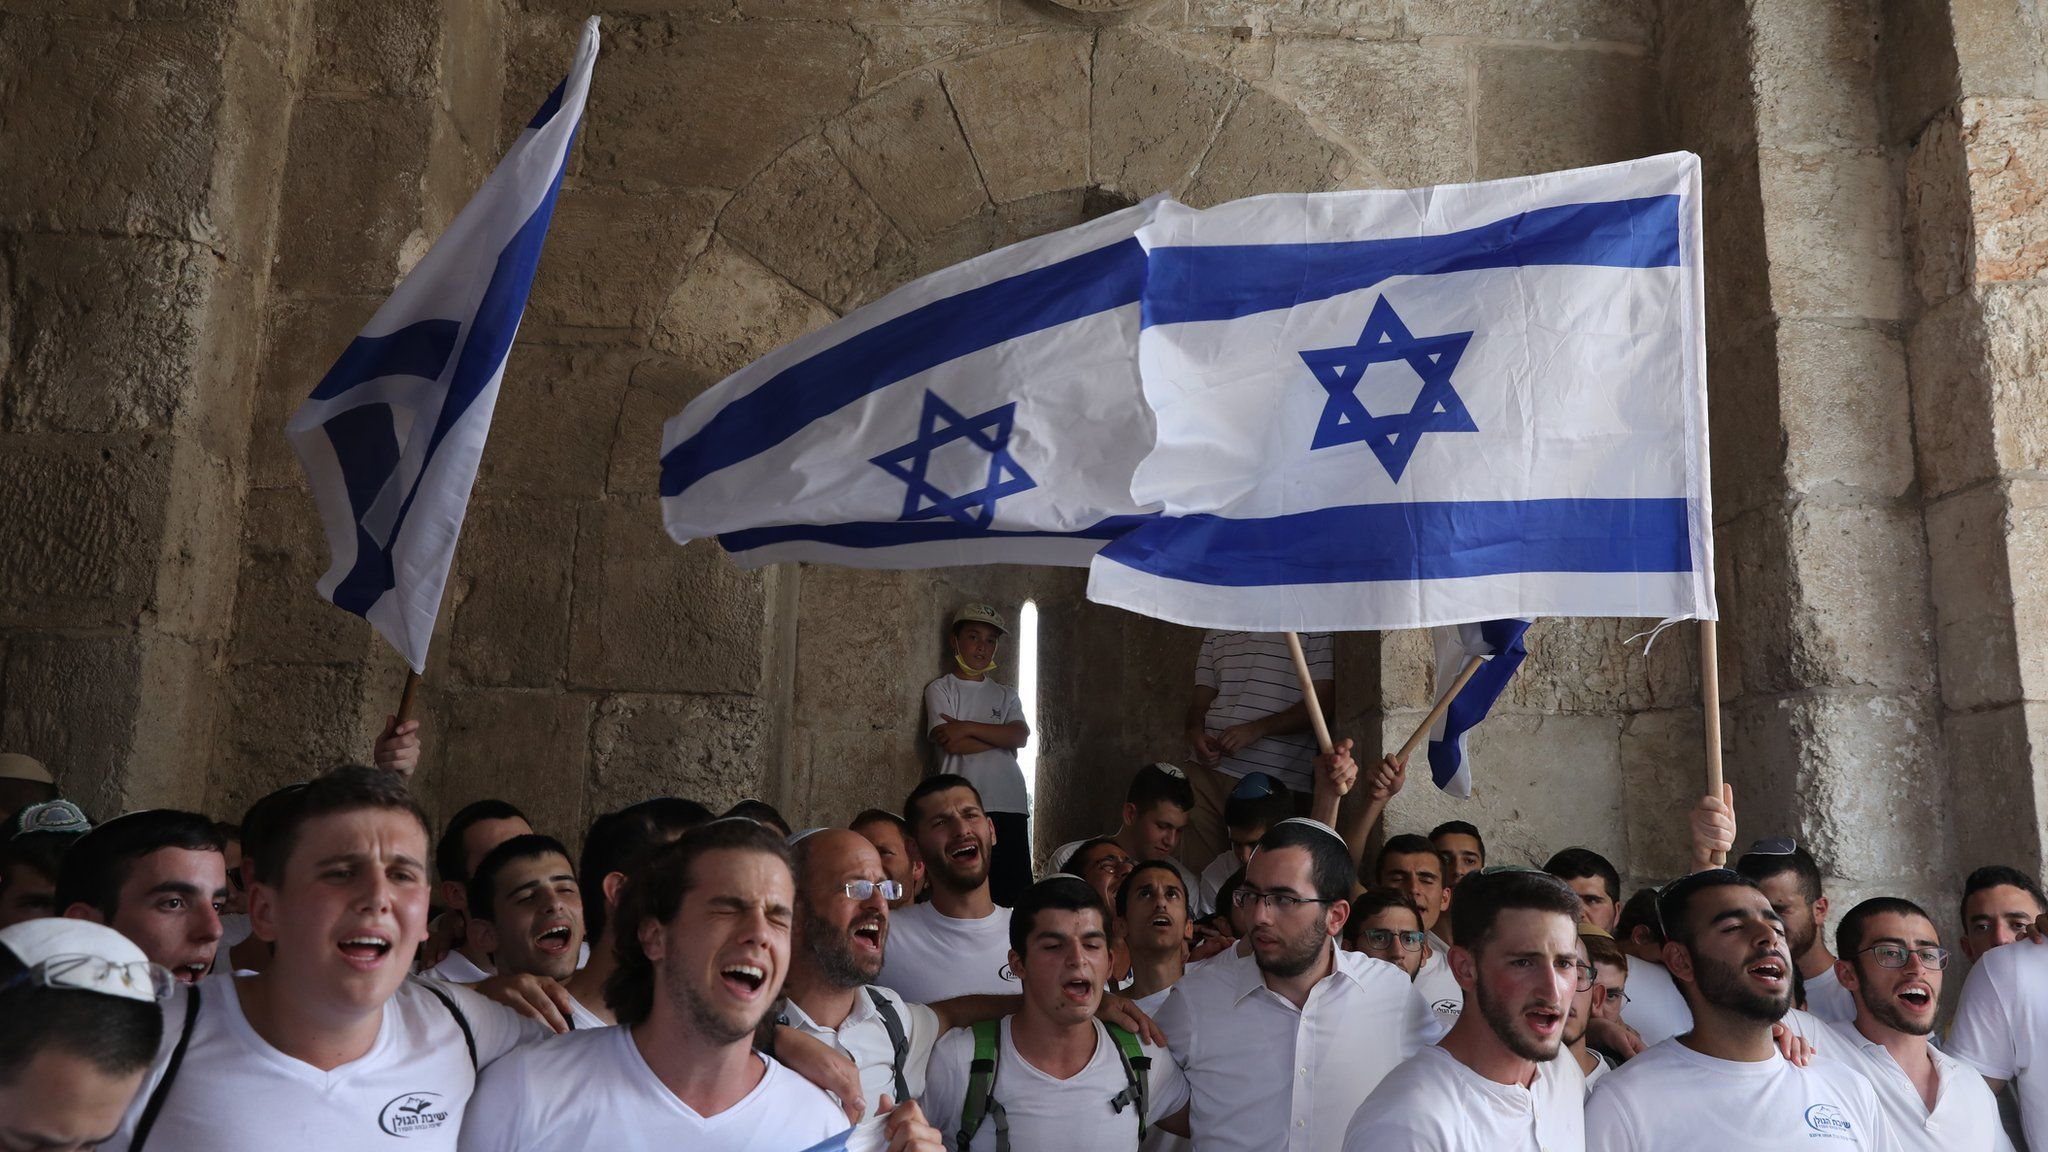 Israeli nationalists carry flags during the annual Jerusalem Day march in the Old City of Jerusalem on 10 May 2021